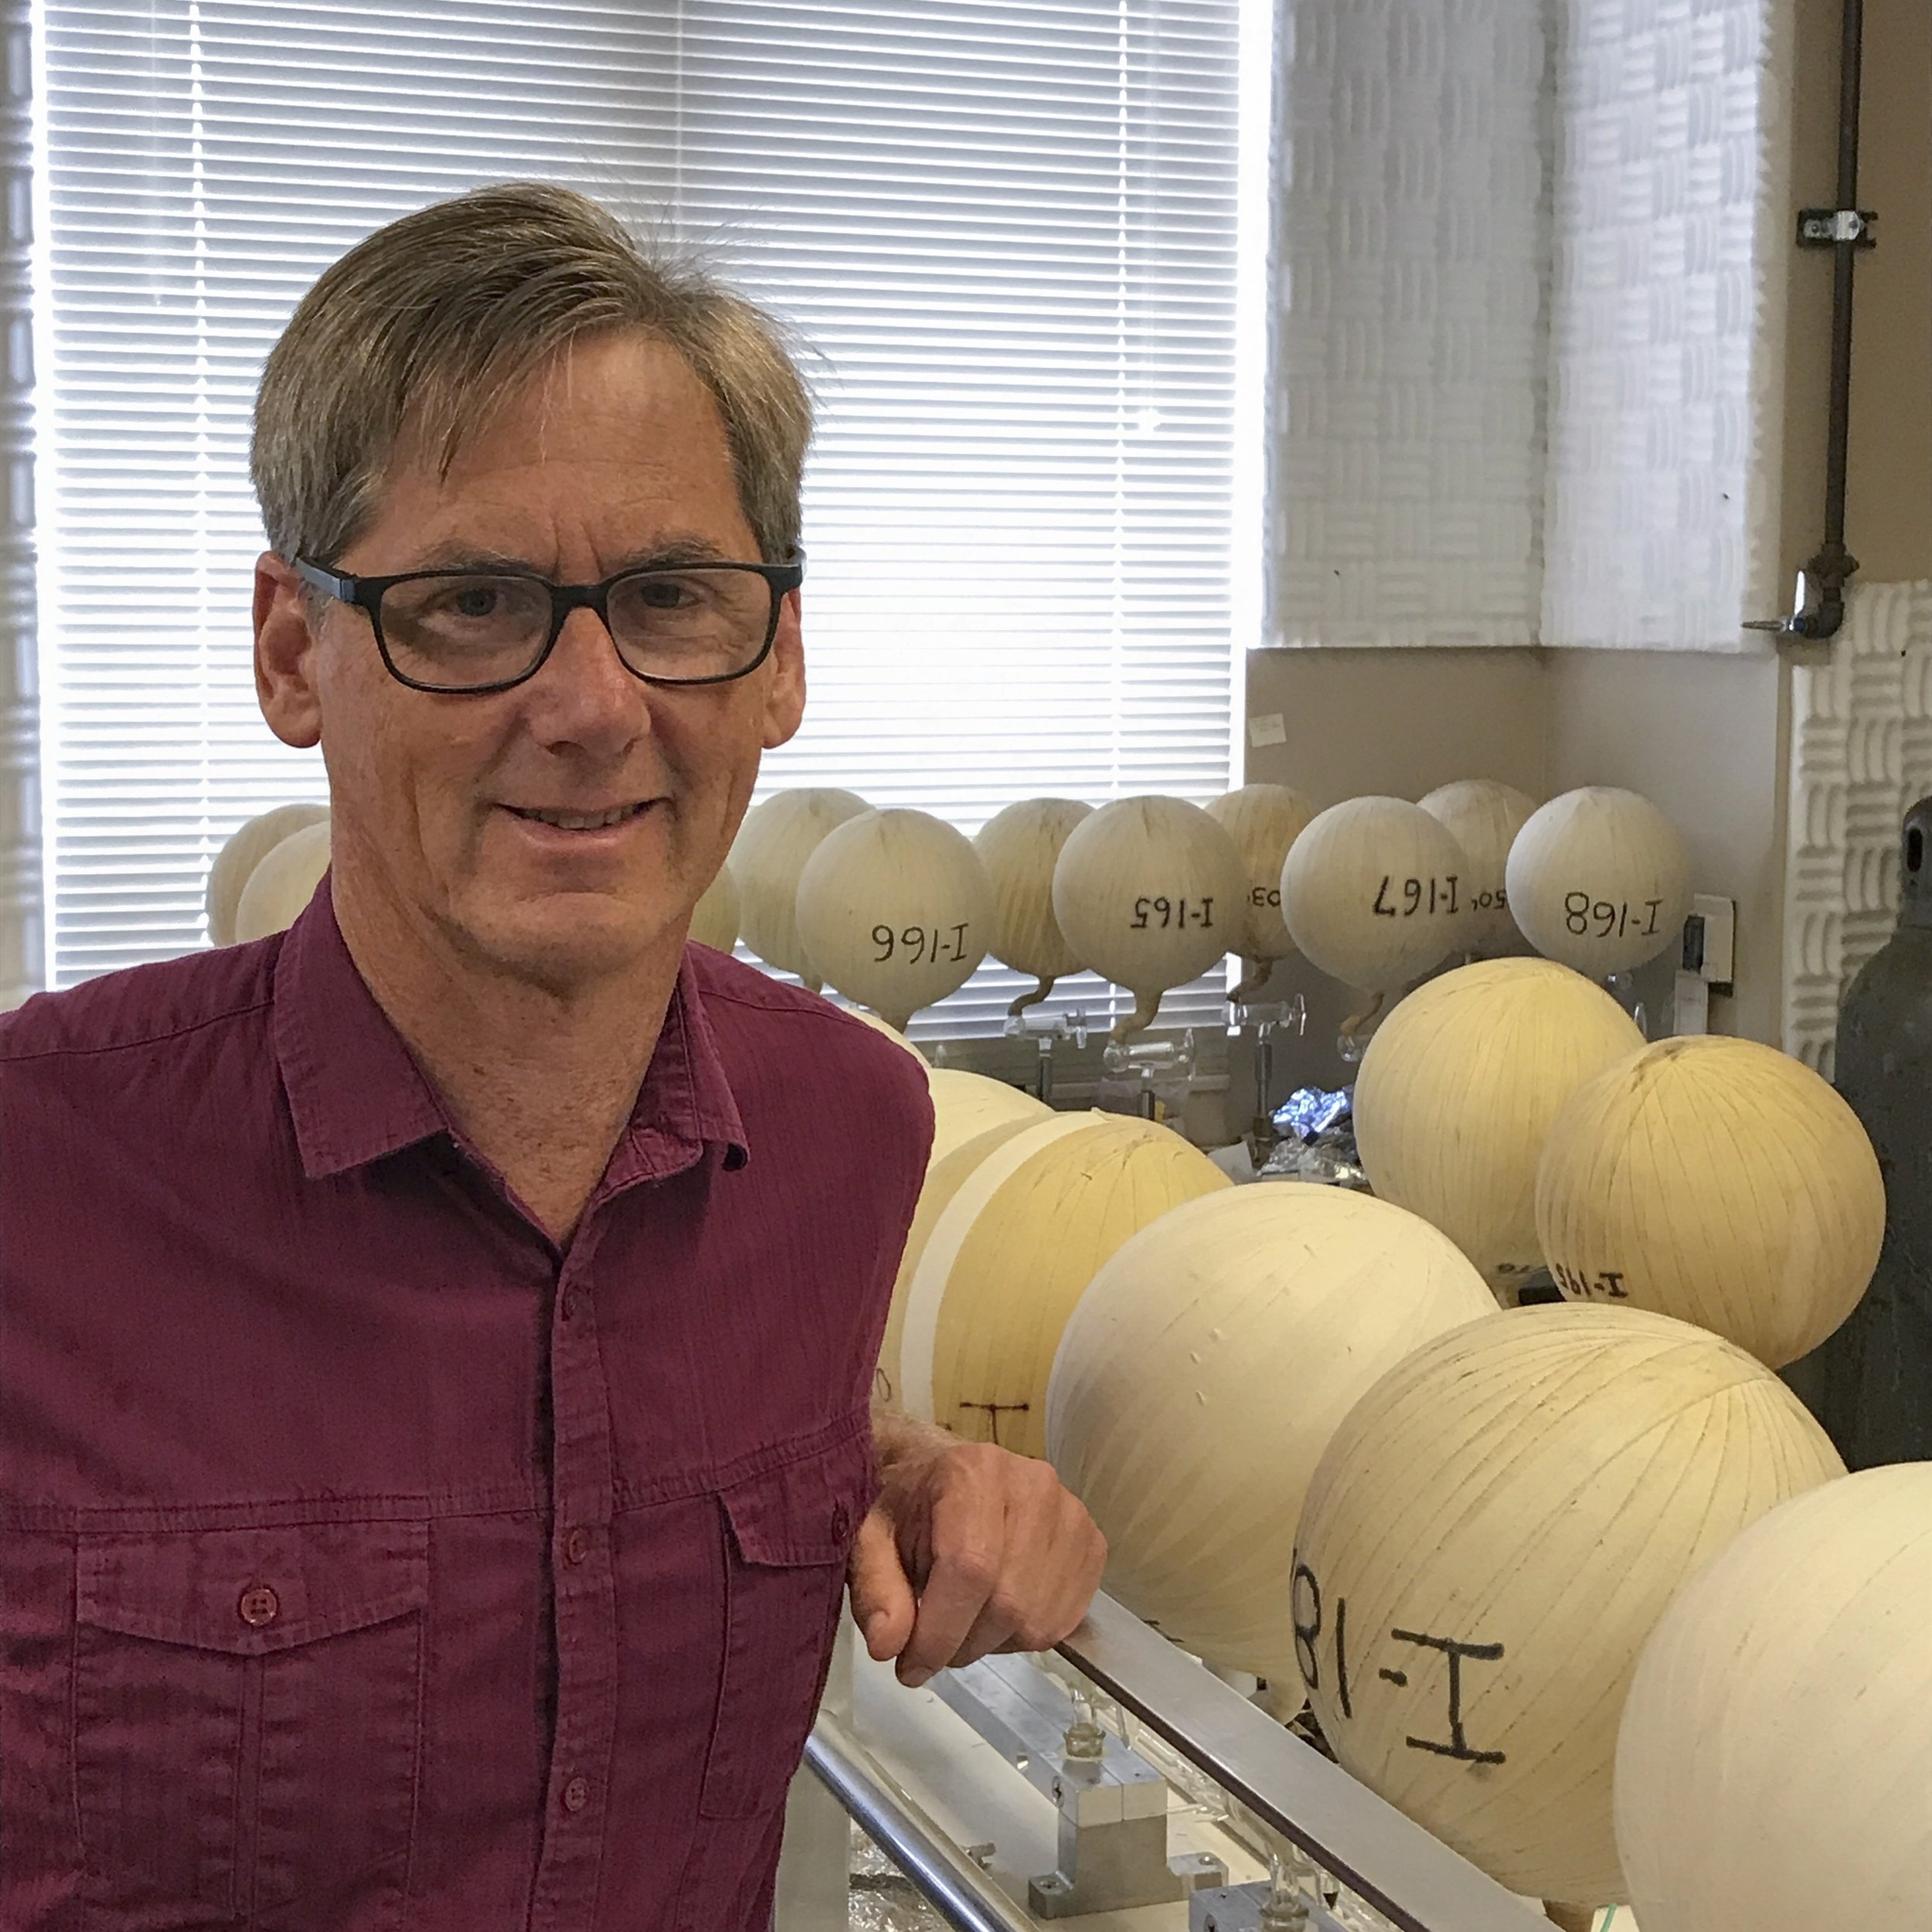 Ralph is professor of geochemistry in the Geosciences Research Division of Scripps Institution of Oceanography, University of California, San Diego. He was the first to demonstrate that the O2 content of air is decreasing due to the burning of fossil fuels and has directed a program to track this decrease since 1989. Since 2005 he has also directed the Scripps CO2 program which sustains the iconic record of carbon dioxide at Mauna Loa and other sites, begun by his father, Charles D. Keeling.